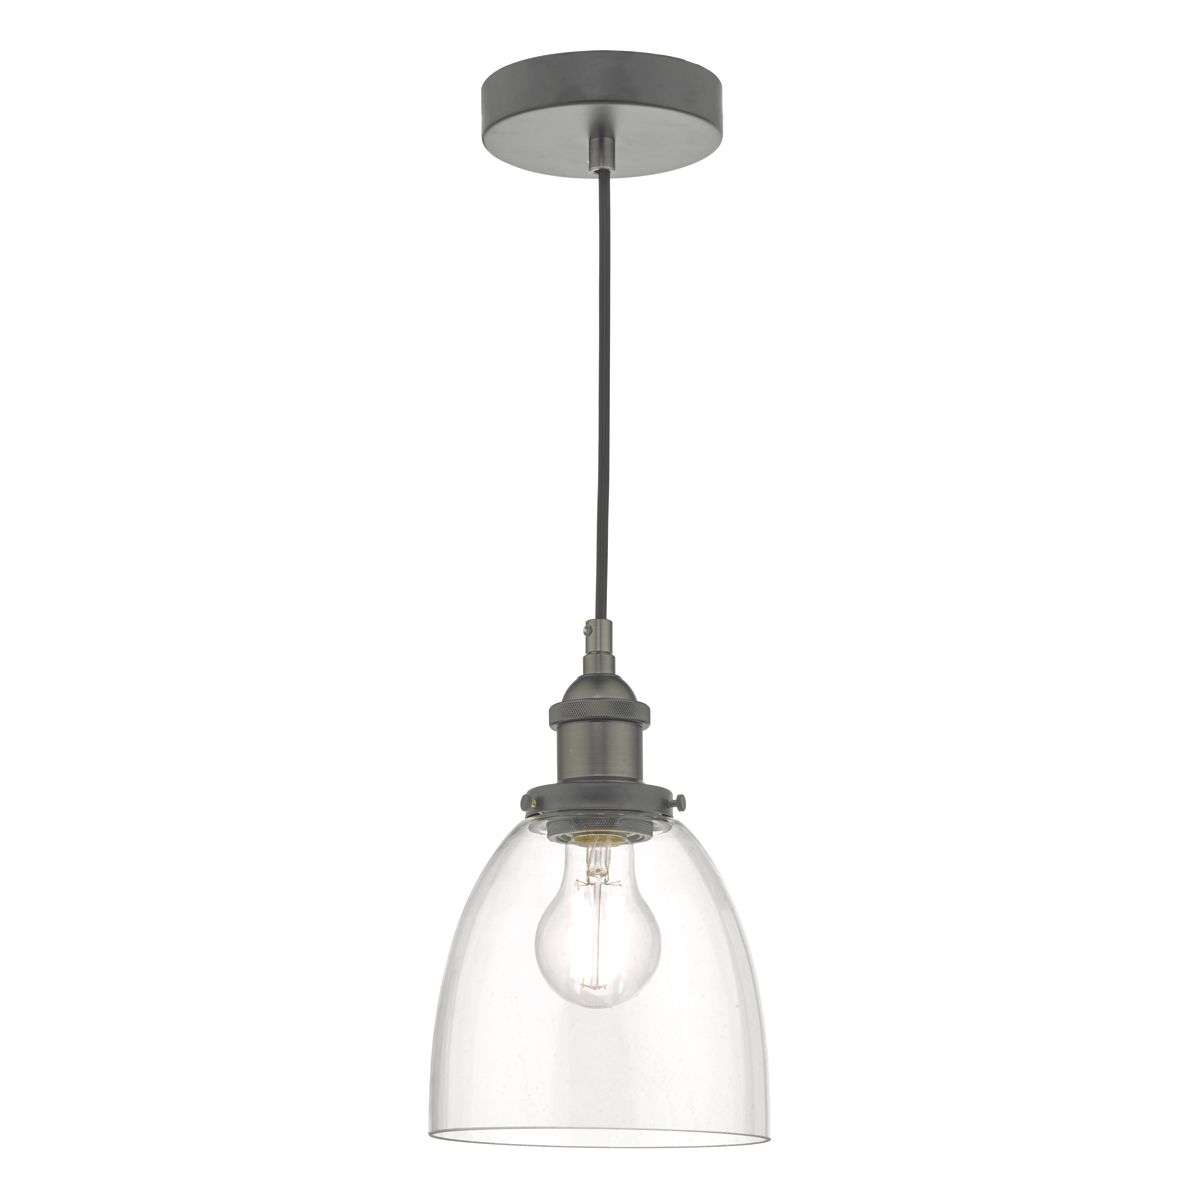 Arvin Single Pendant in Antique Chrome & Glass